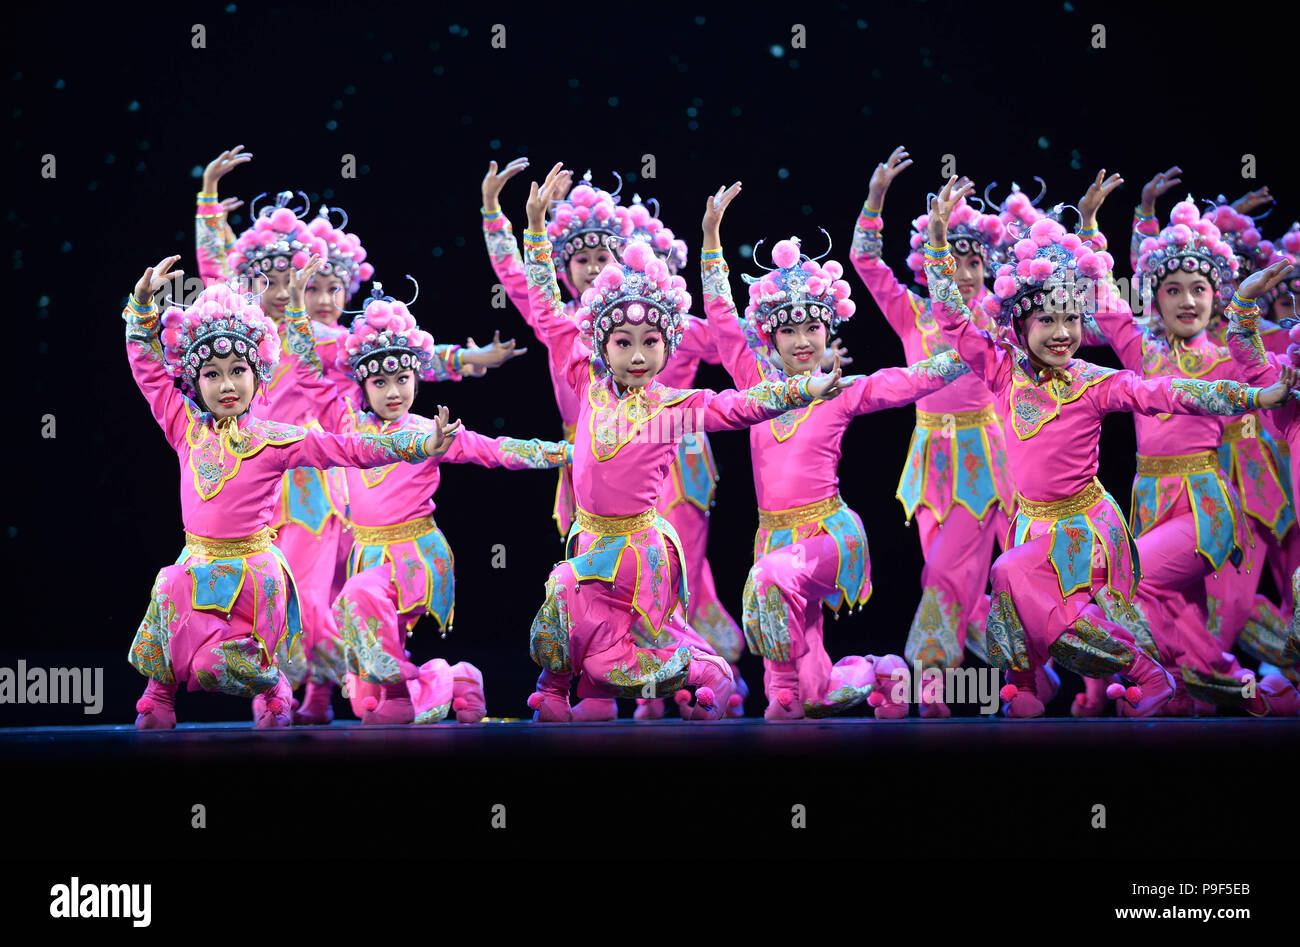 Beijing, China. 17th July, 2018. Children perform during a dance exhibition at Tianqiao Performing Arts Center in Beijing, capital of China, July 17, 2018. The dance exhibition, co-hosted by China Federation of Literary and Art Circles and Chinese Dancers Association, was held from July 17 to 18. Credit: Xiao Xiao/Xinhua/Alamy Live News - Stock Image